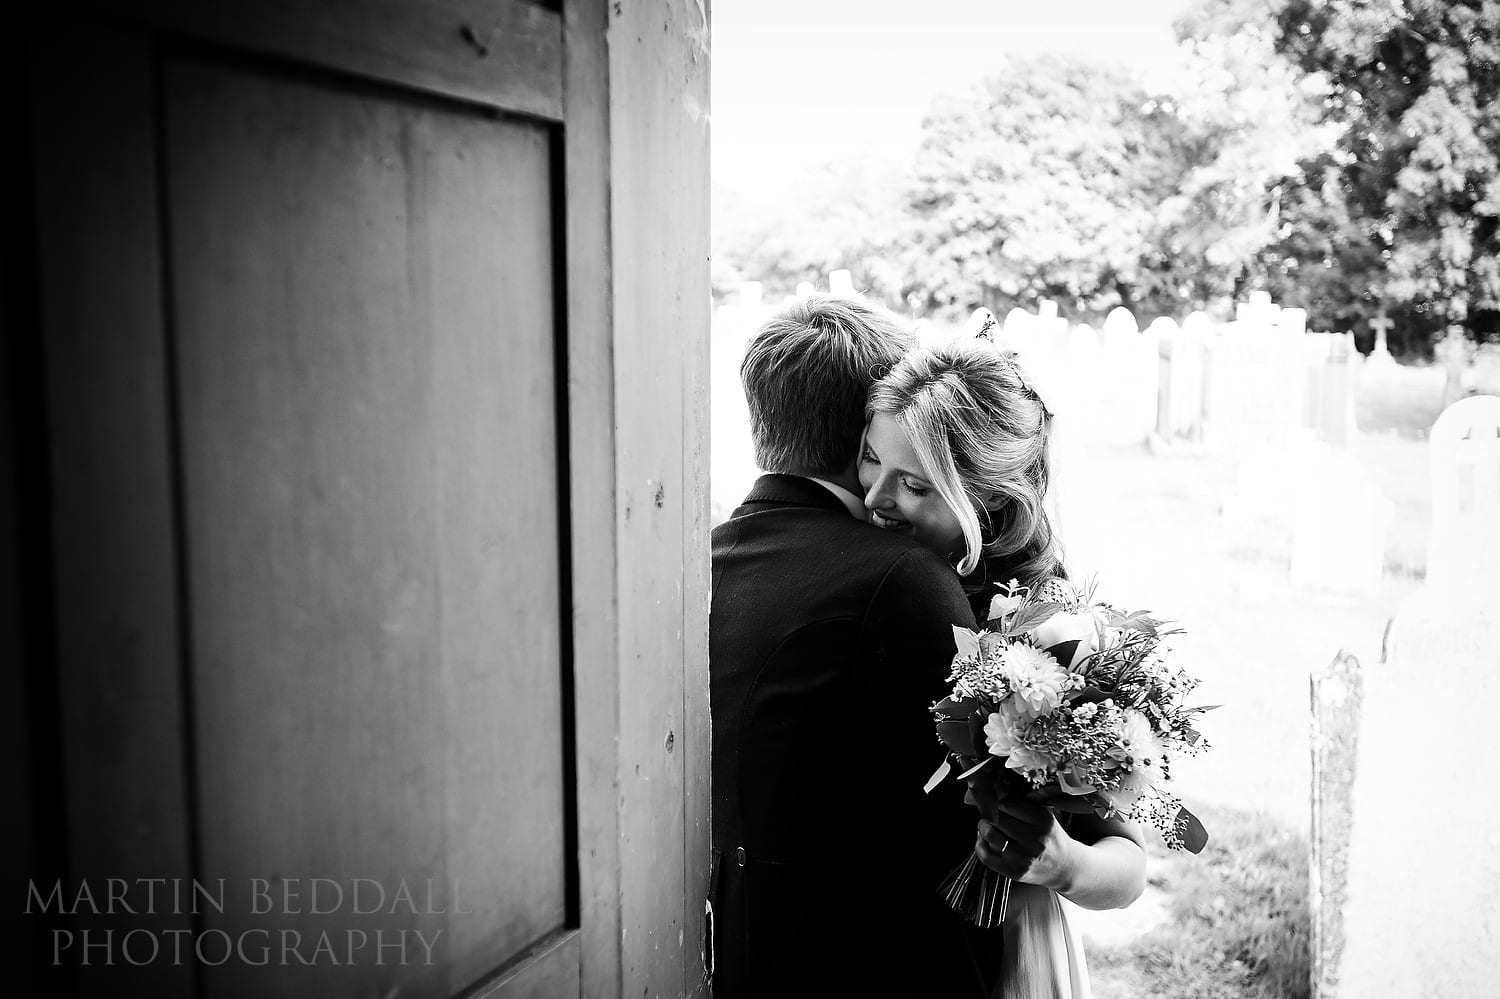 Wedding Photography in 2014